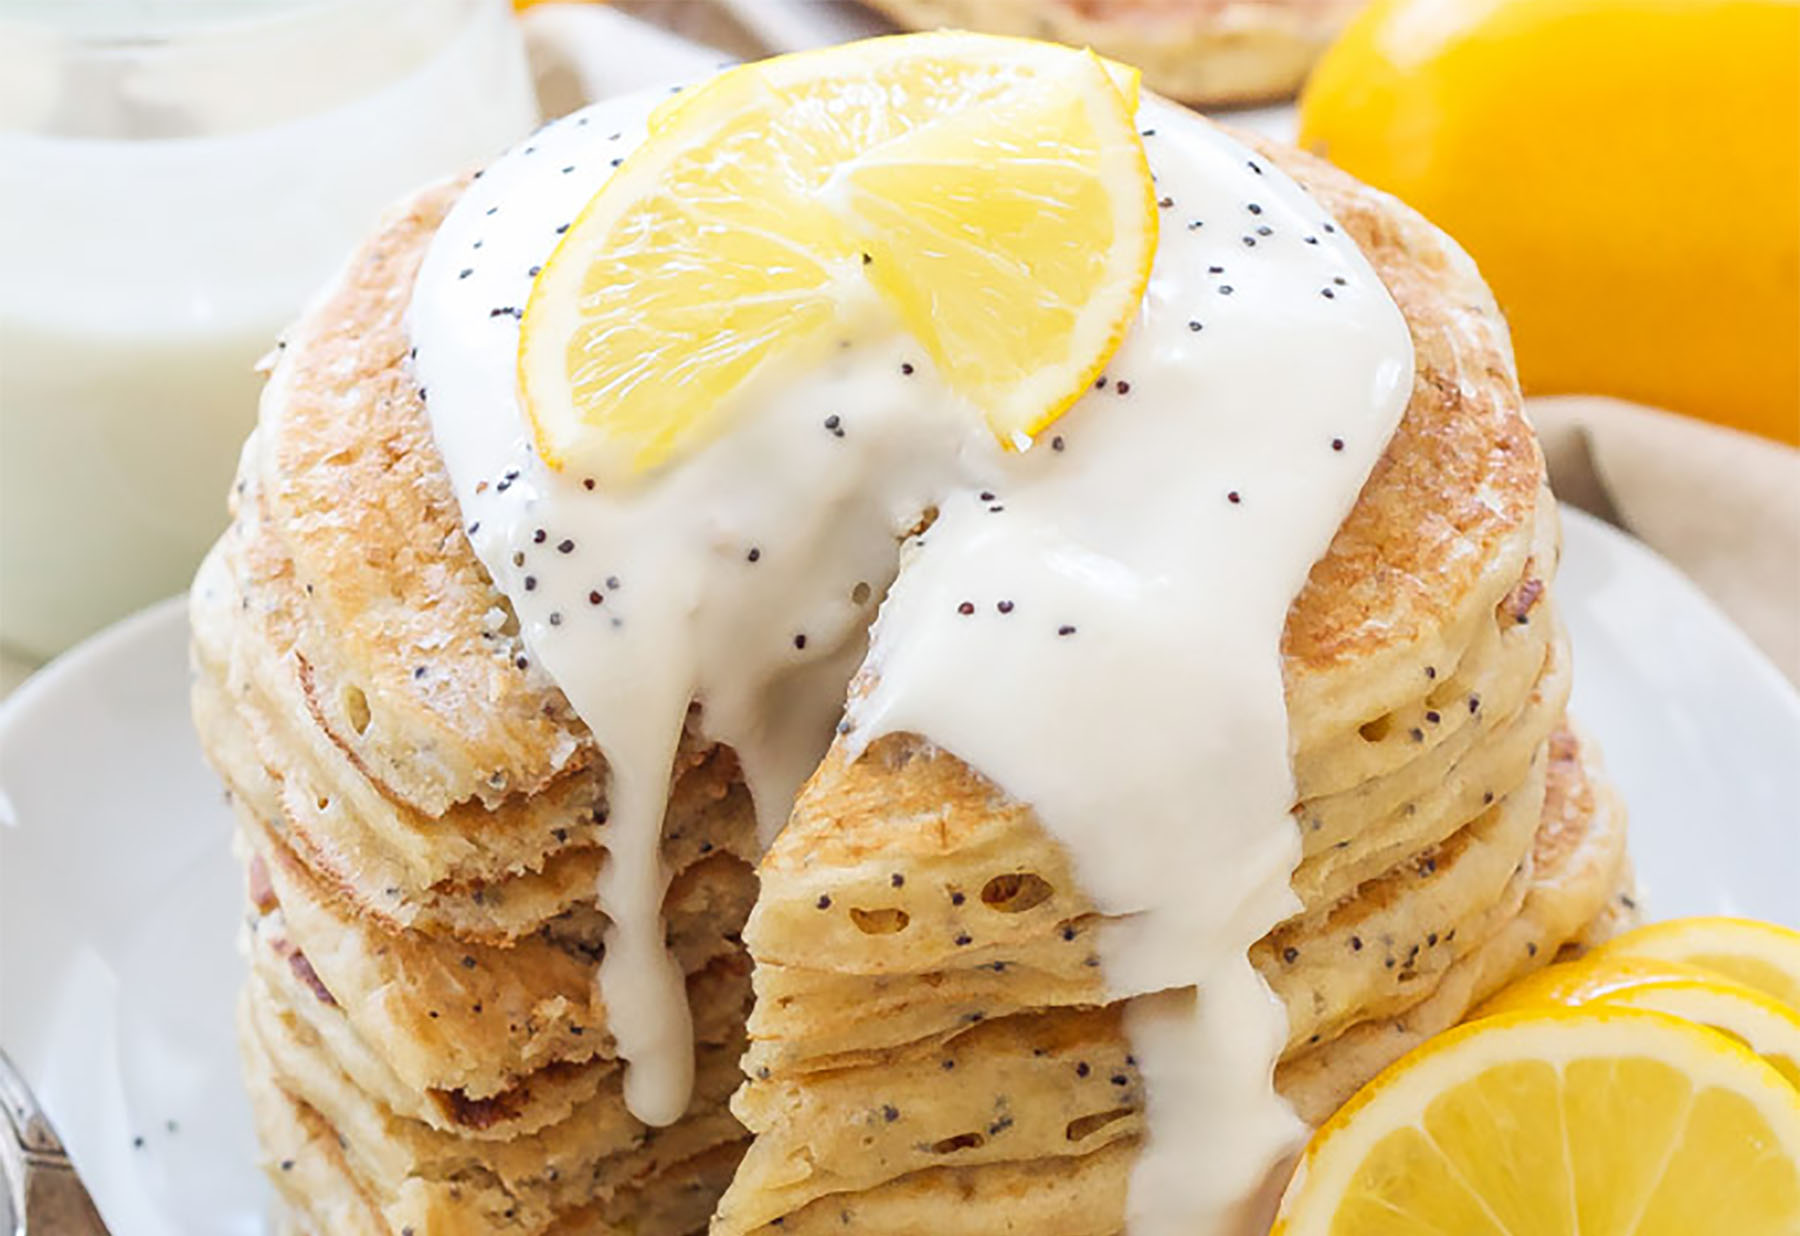 Winter Fruits: 9 Citrus Recipes to Enjoy When Its Cold